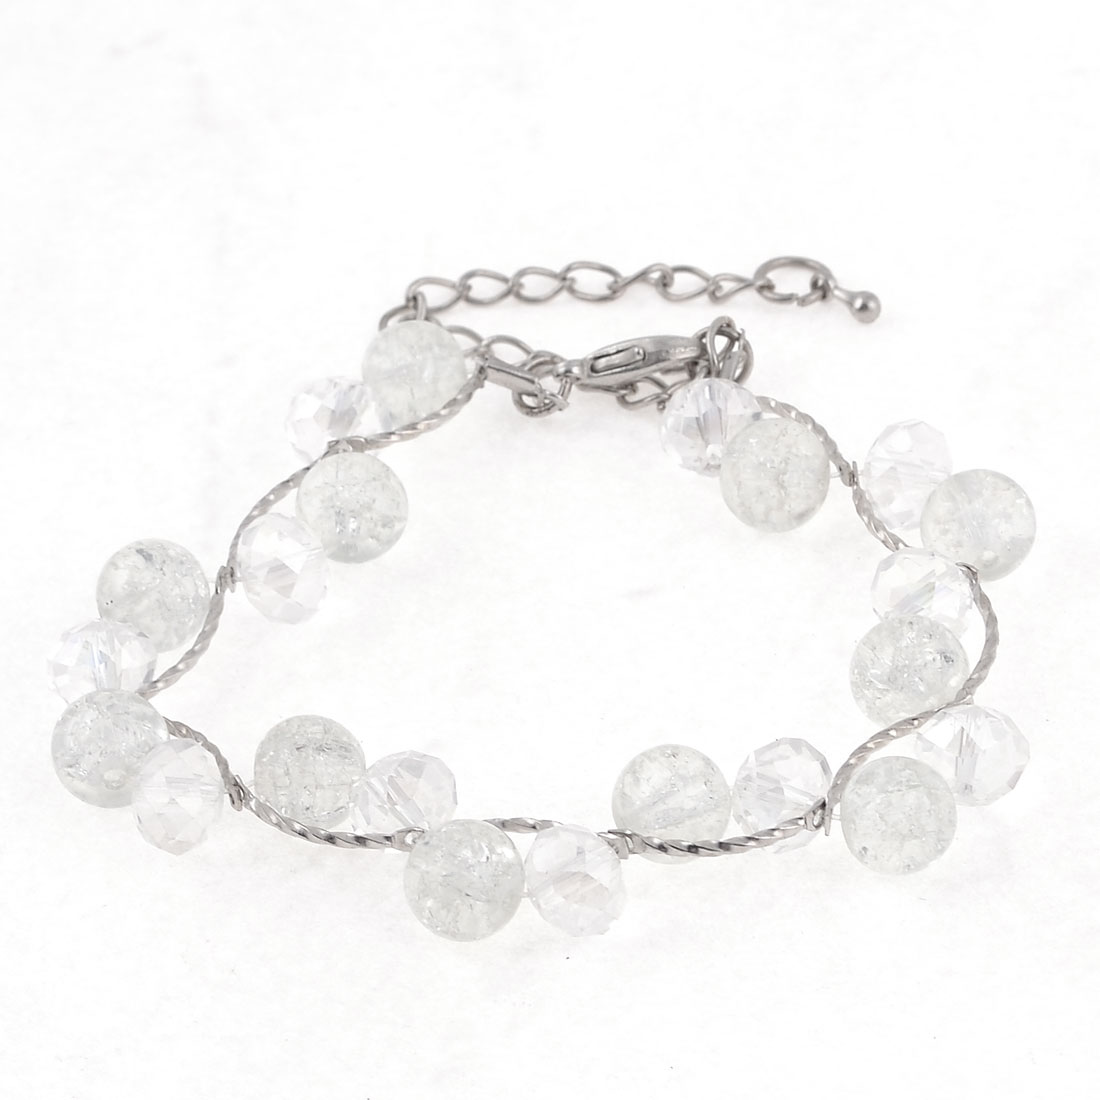 Silver Tone Adjustable Metal Link White Beads Decor Bracelet for Lady